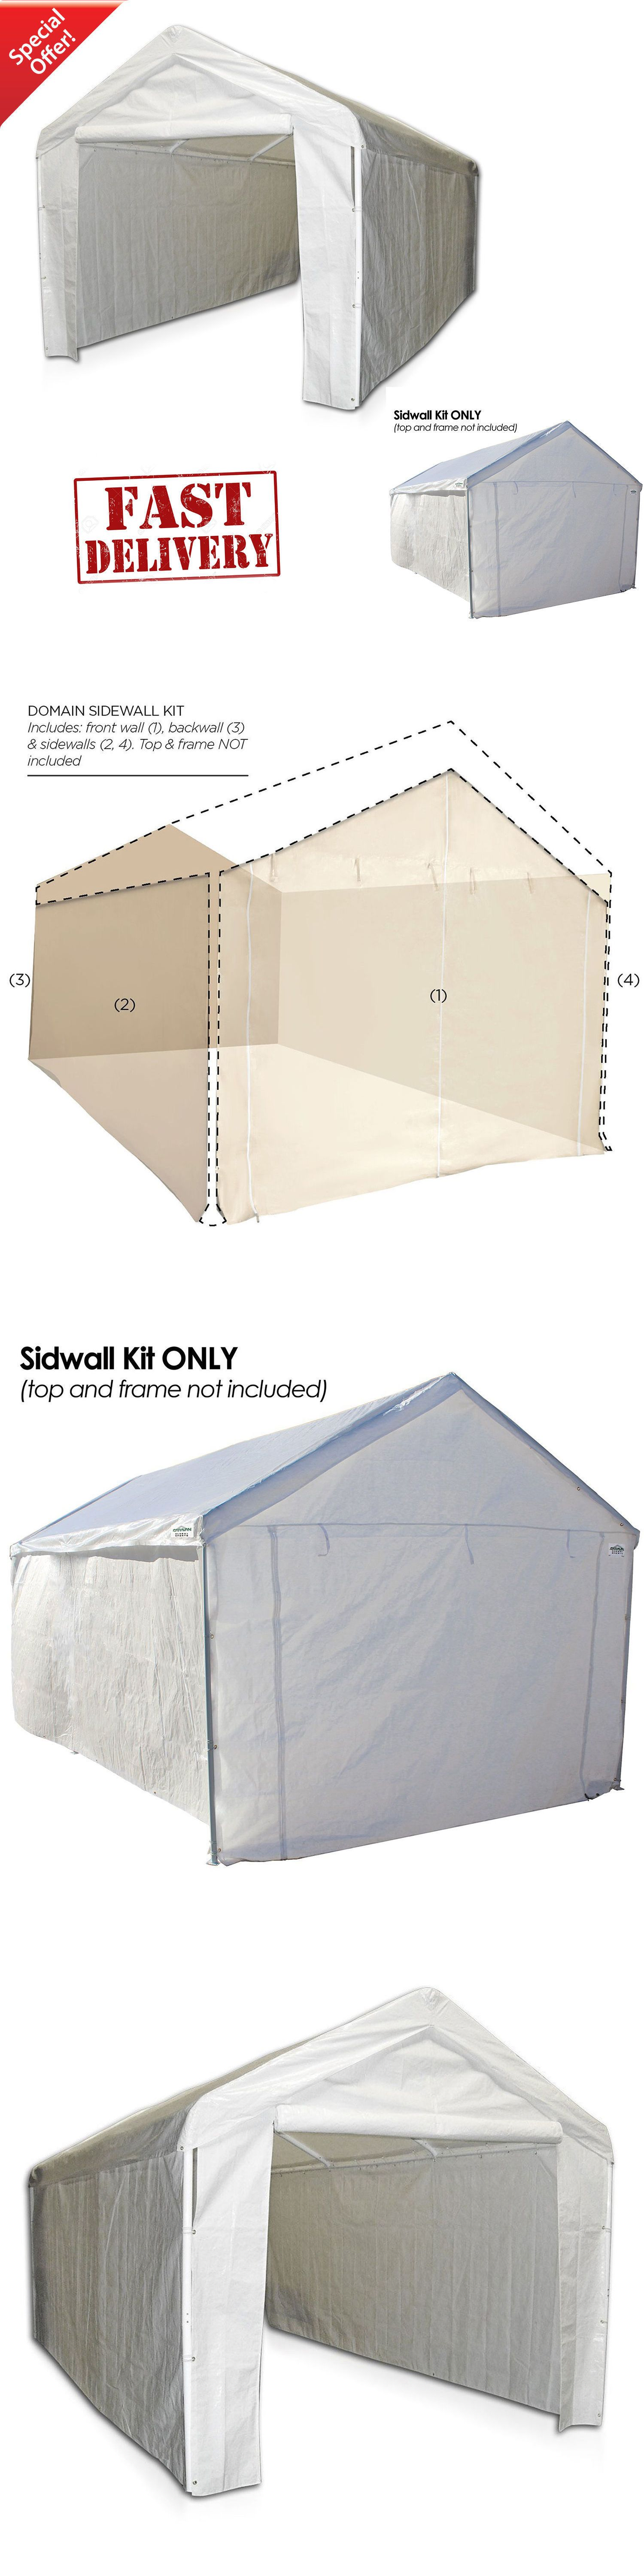 Details about Garage Canopy Side Wall Kit ONLY 10 x 20